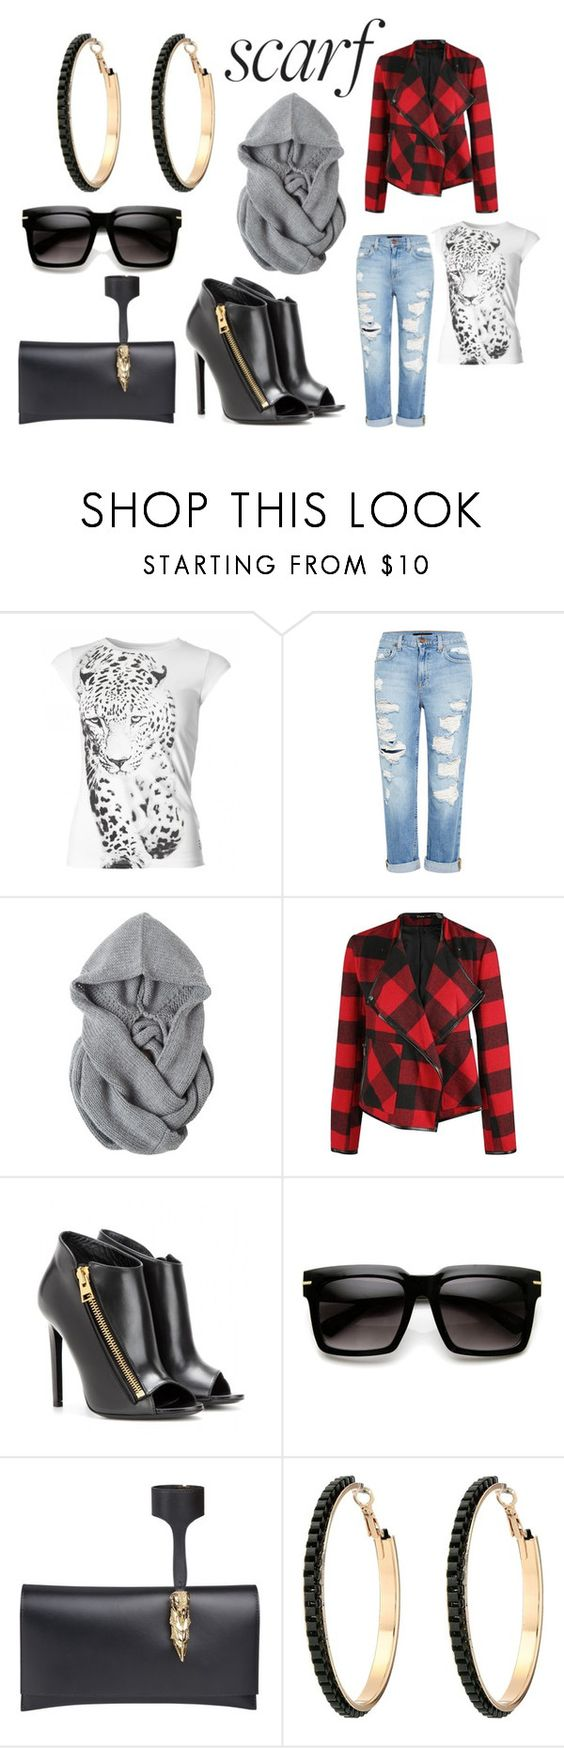 """""""Scarf"""" by penelopemiller ❤ liked on Polyvore featuring EA7 Emporio Armani, Genetic Denim, Toast, Dex, Tom Ford and GUESS"""